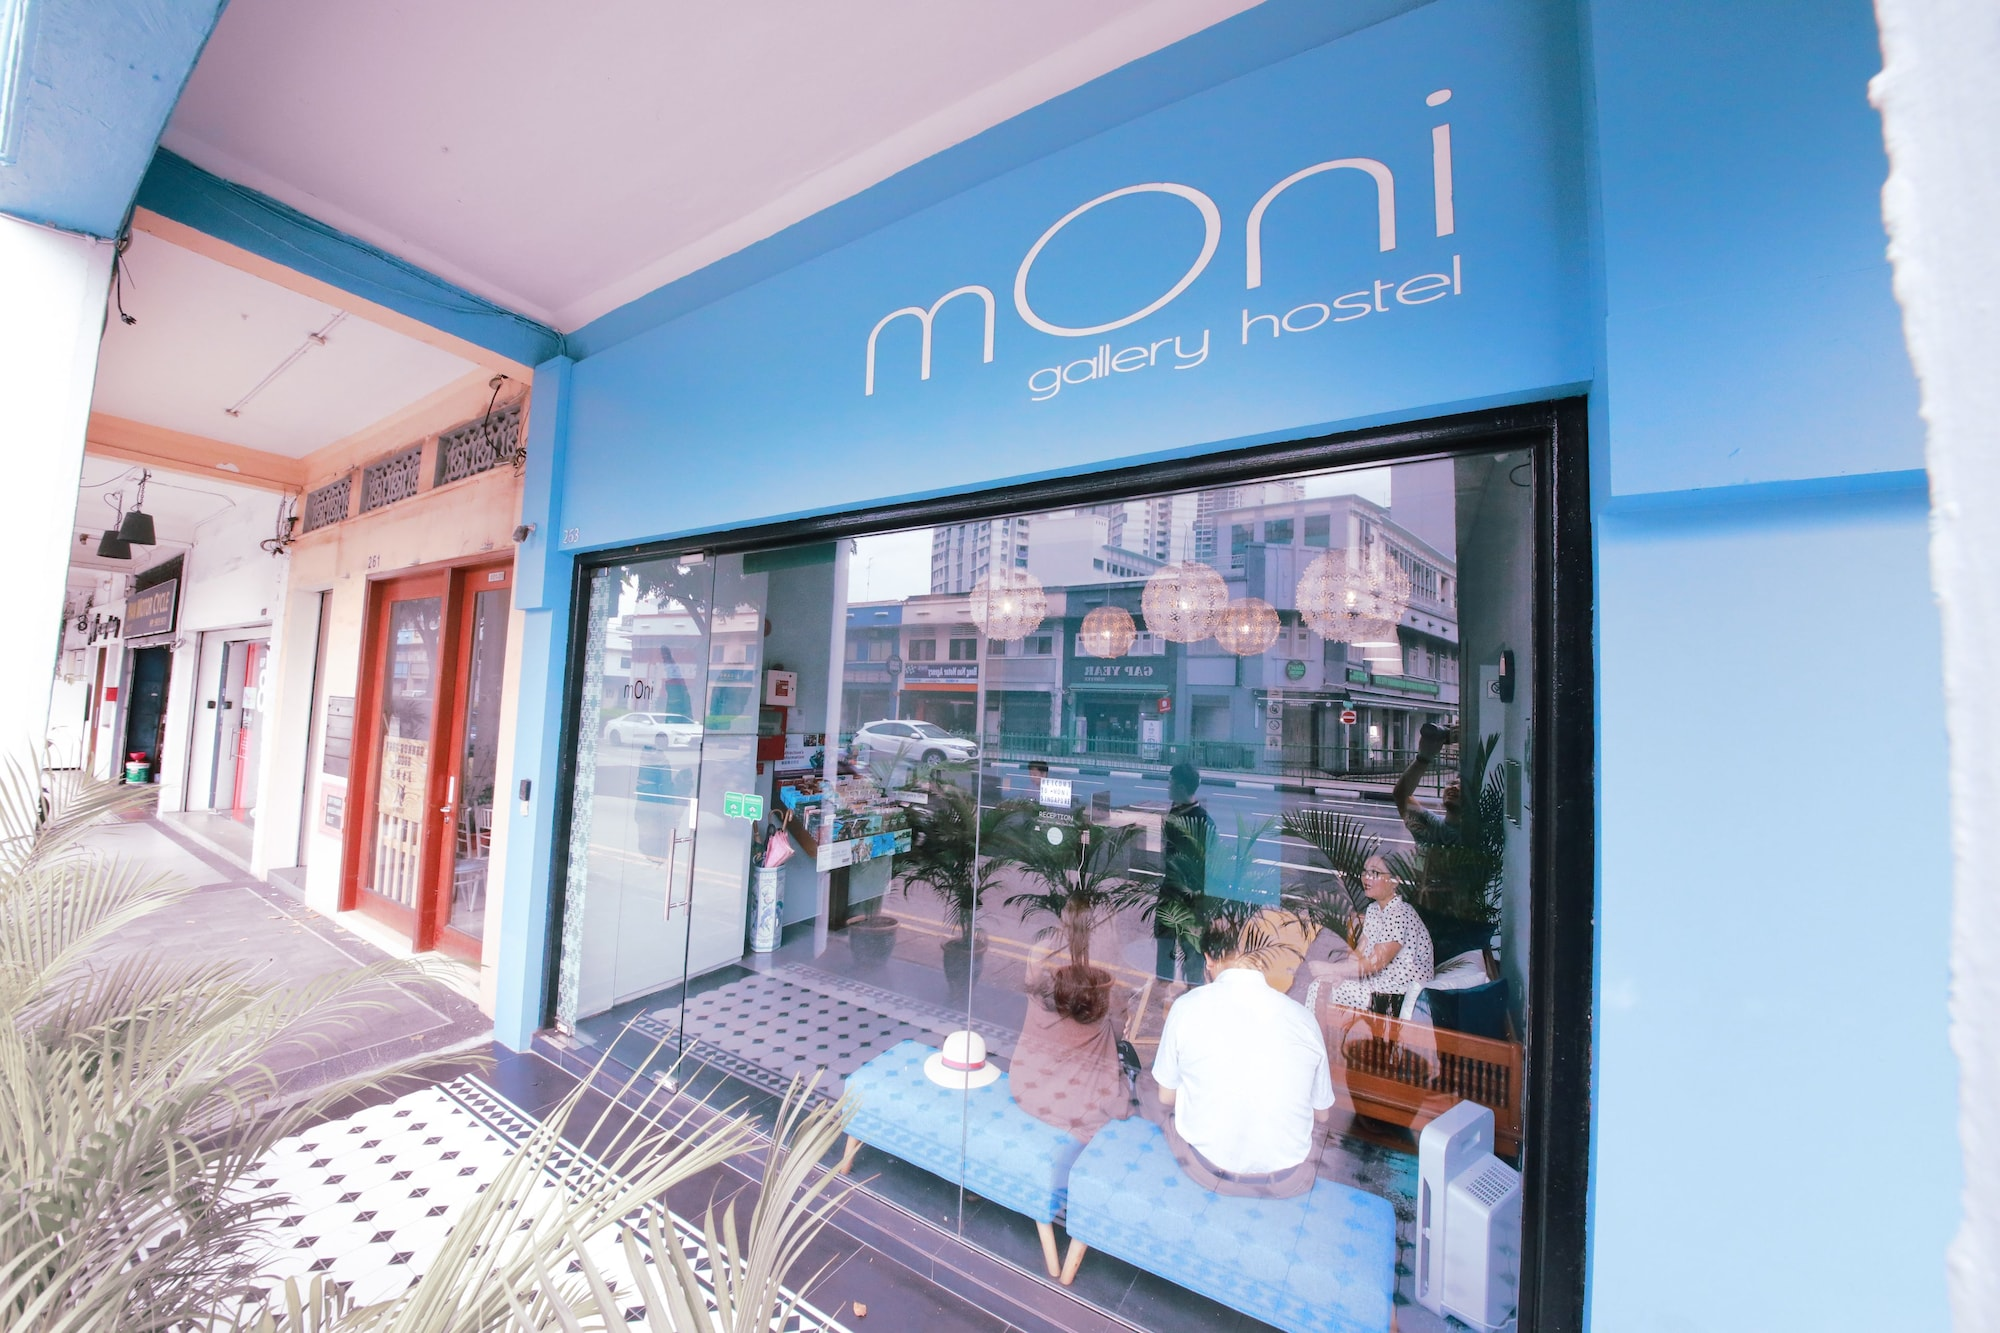 Moni Gallery Hostel, Kallang